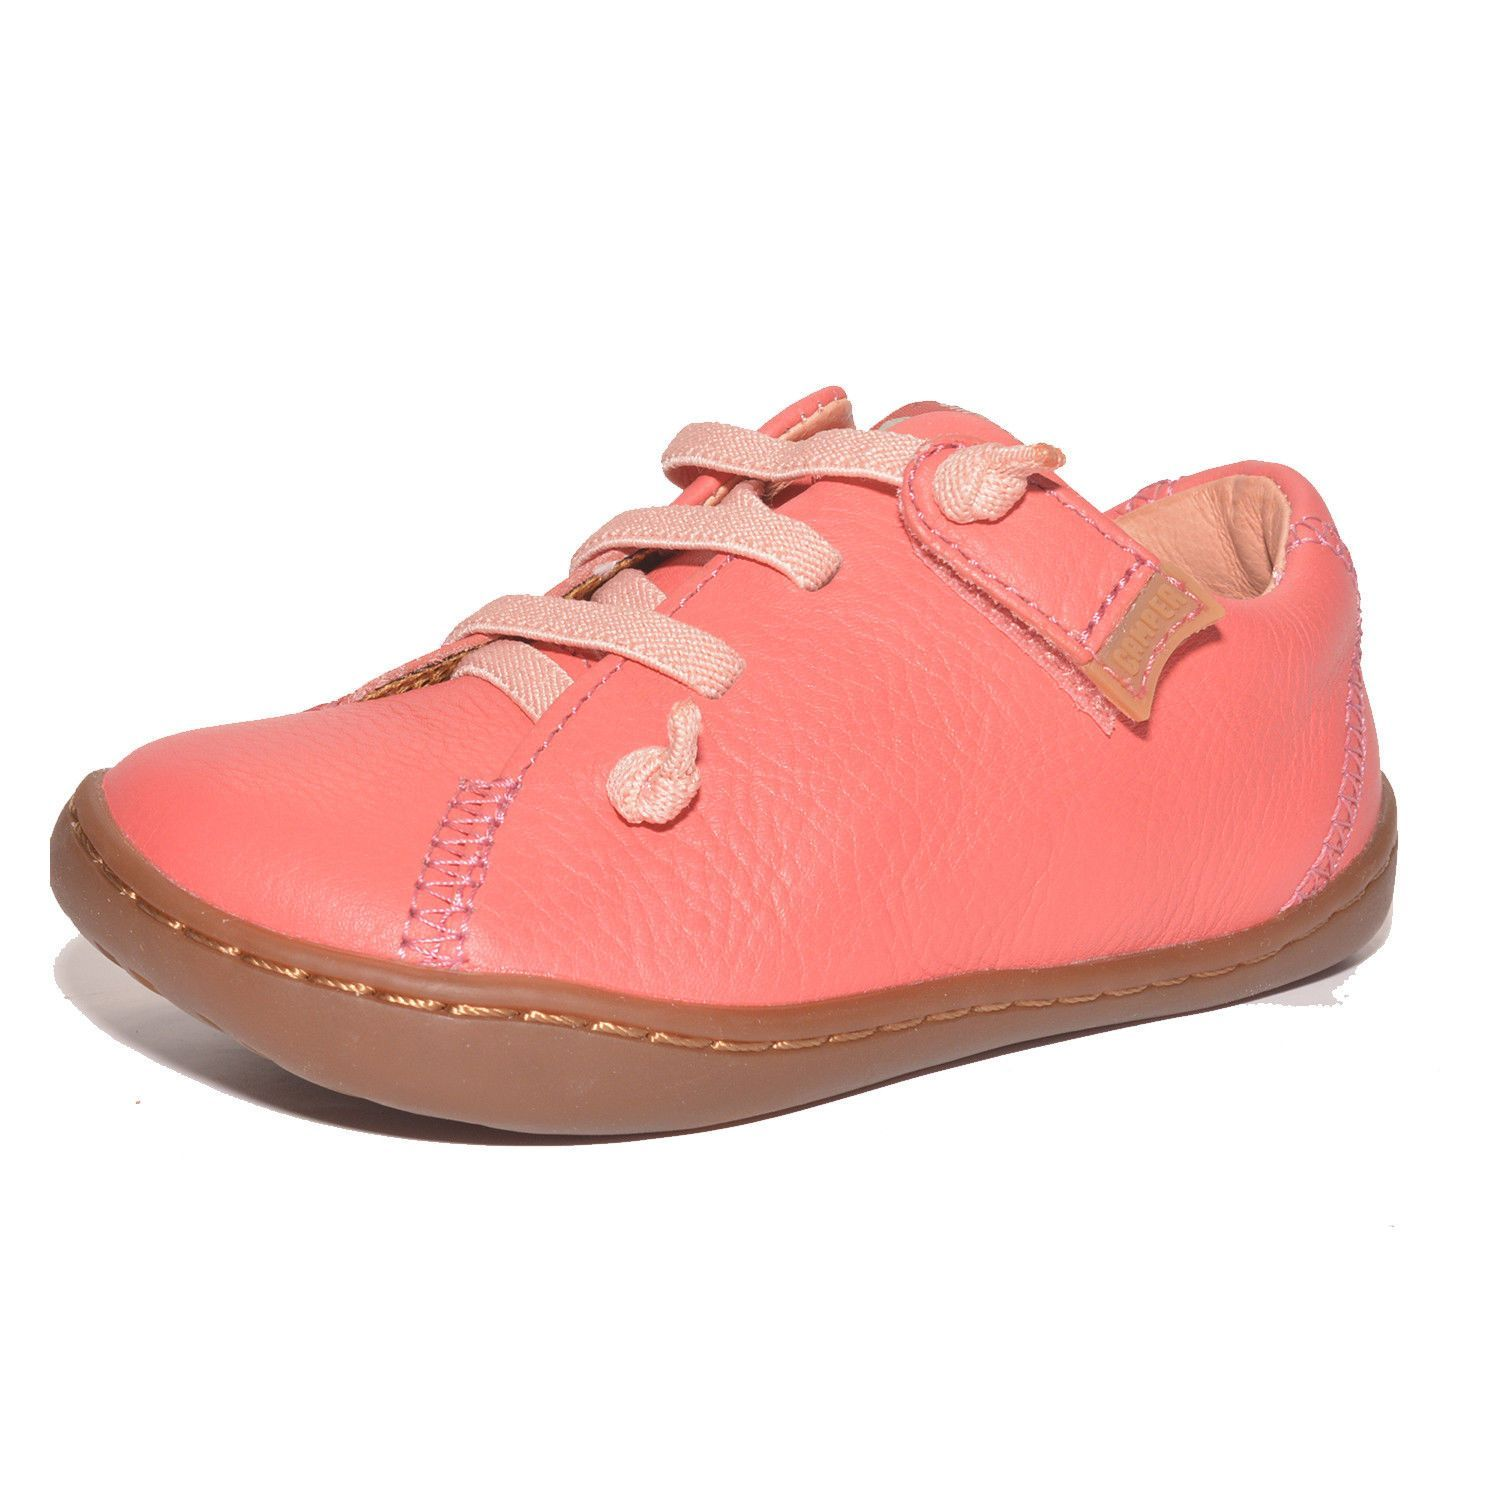 Pink Cami With Zigzag Leather Camper 80212 Shoes Peu Girls PZwliuOkXT